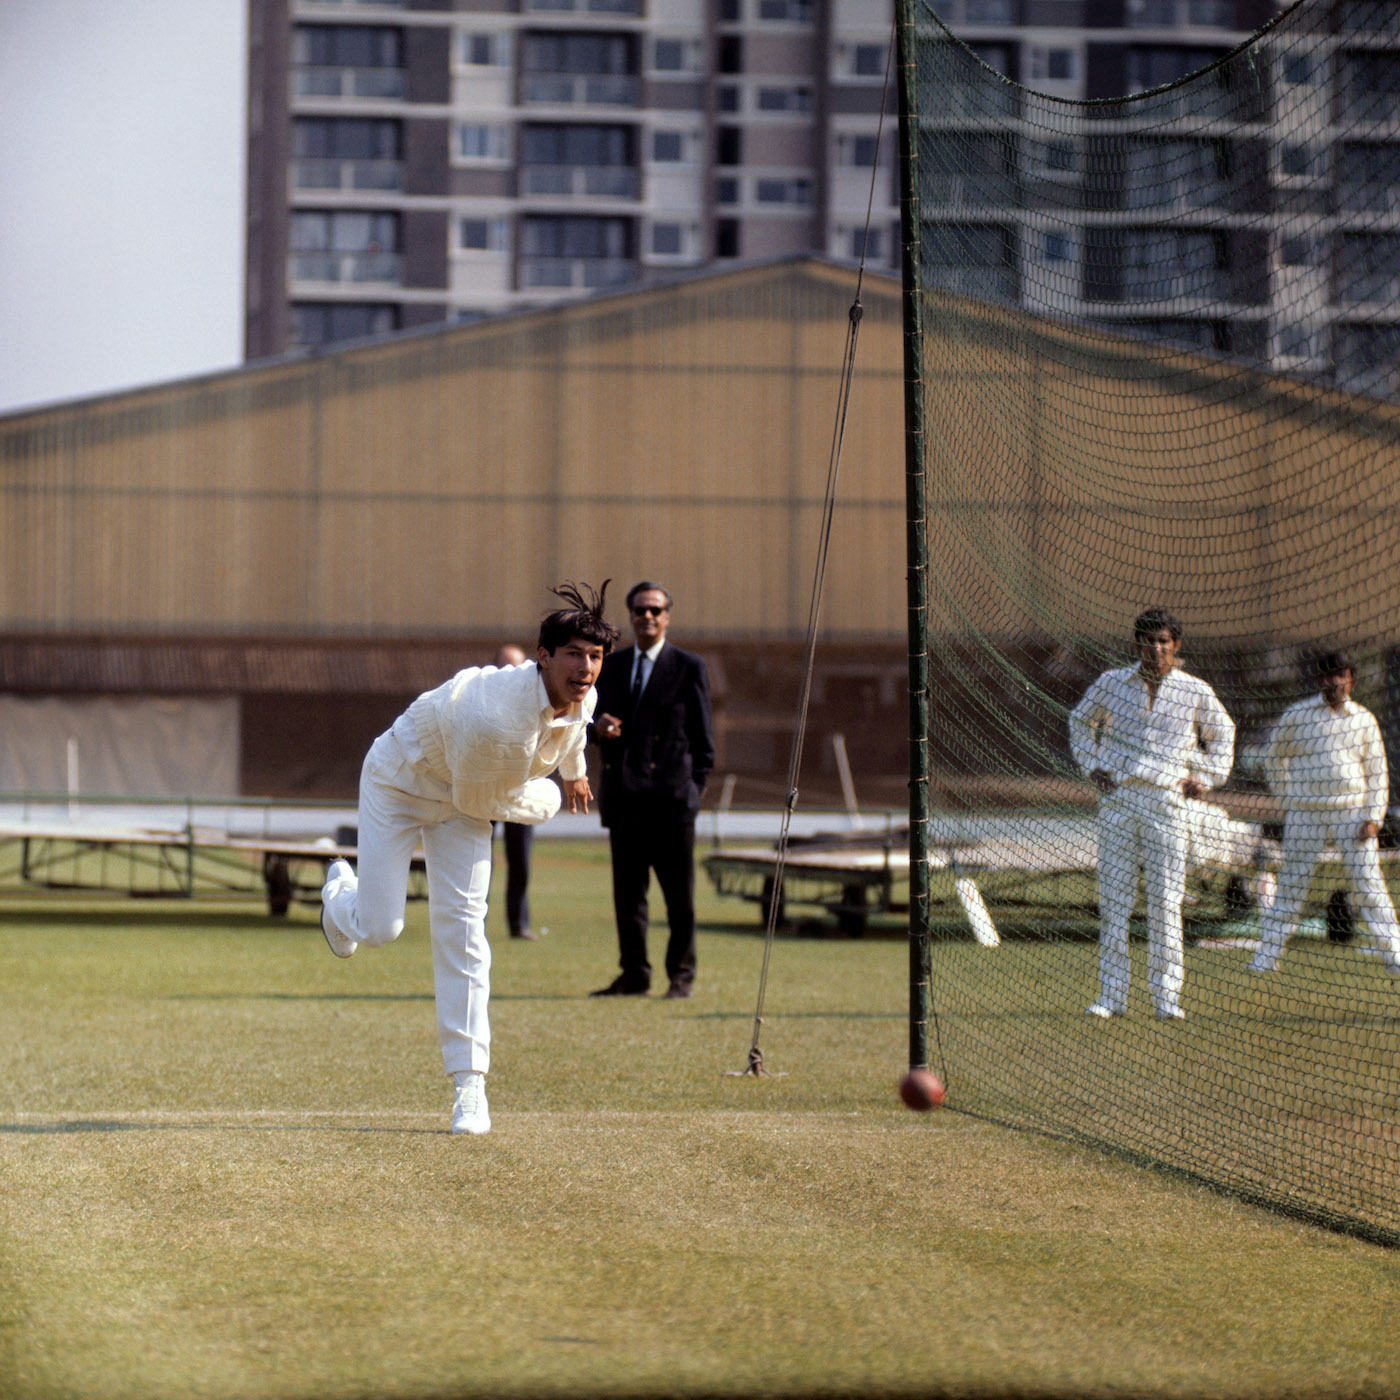 Early days: in the Lord's nets during the 1971 Pakistan tour of England